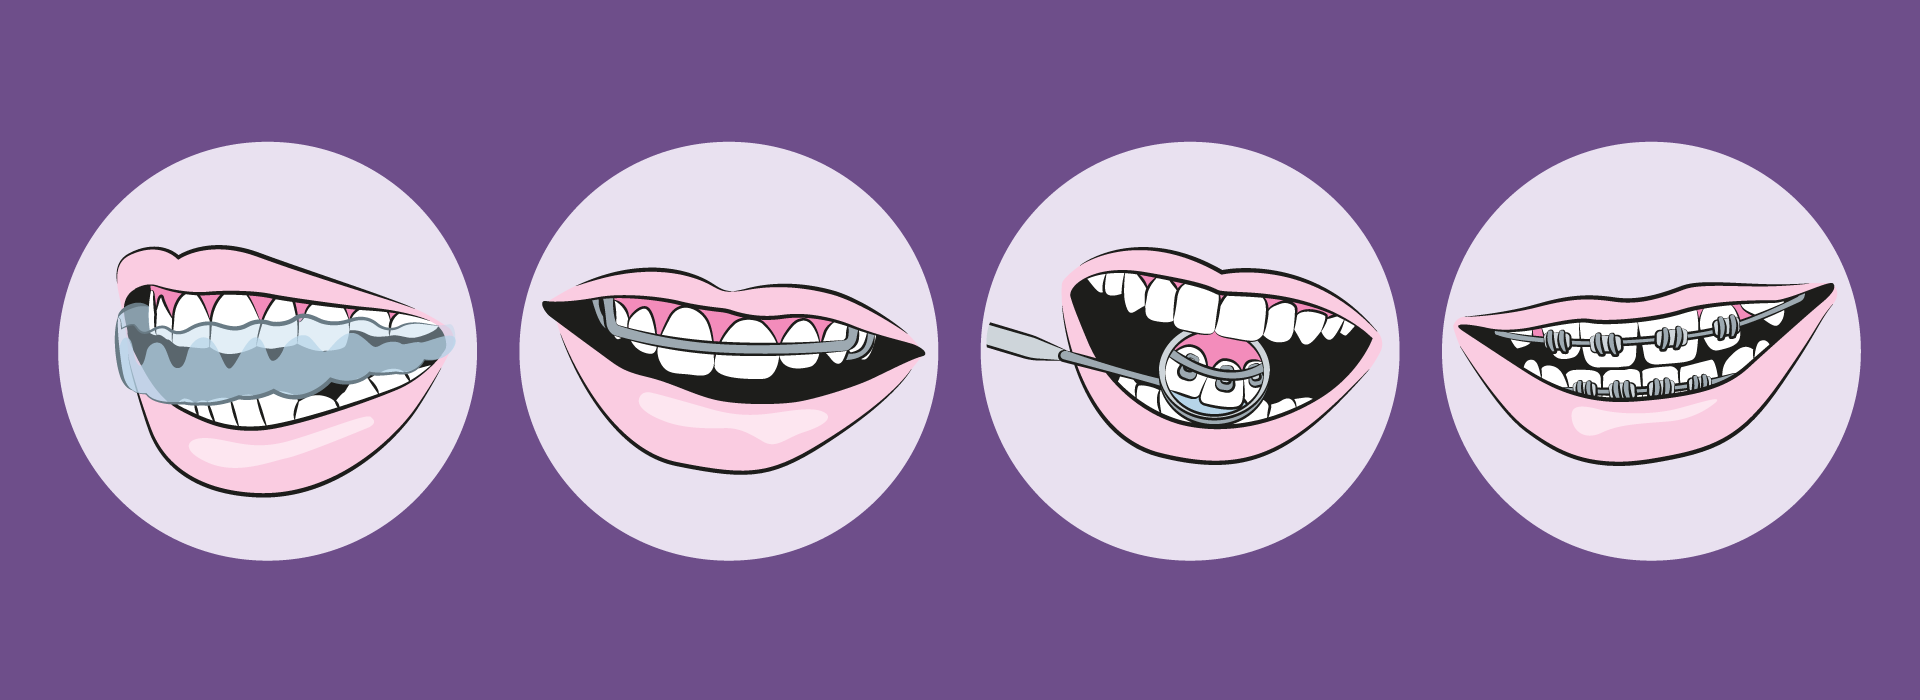 illustration-braces-types